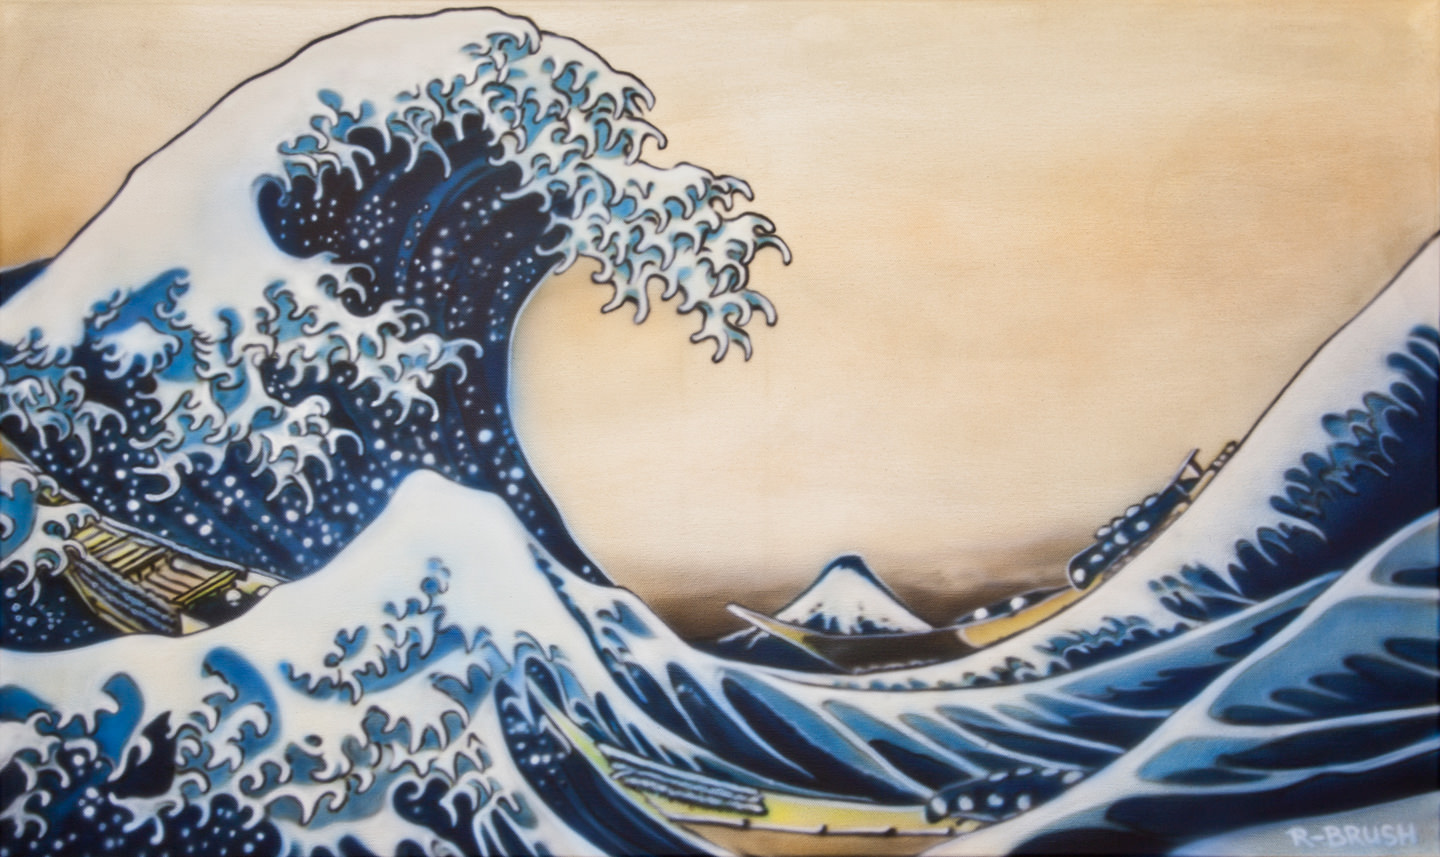 Japans airbrush schilderij van The Great Wave off Kanagawa